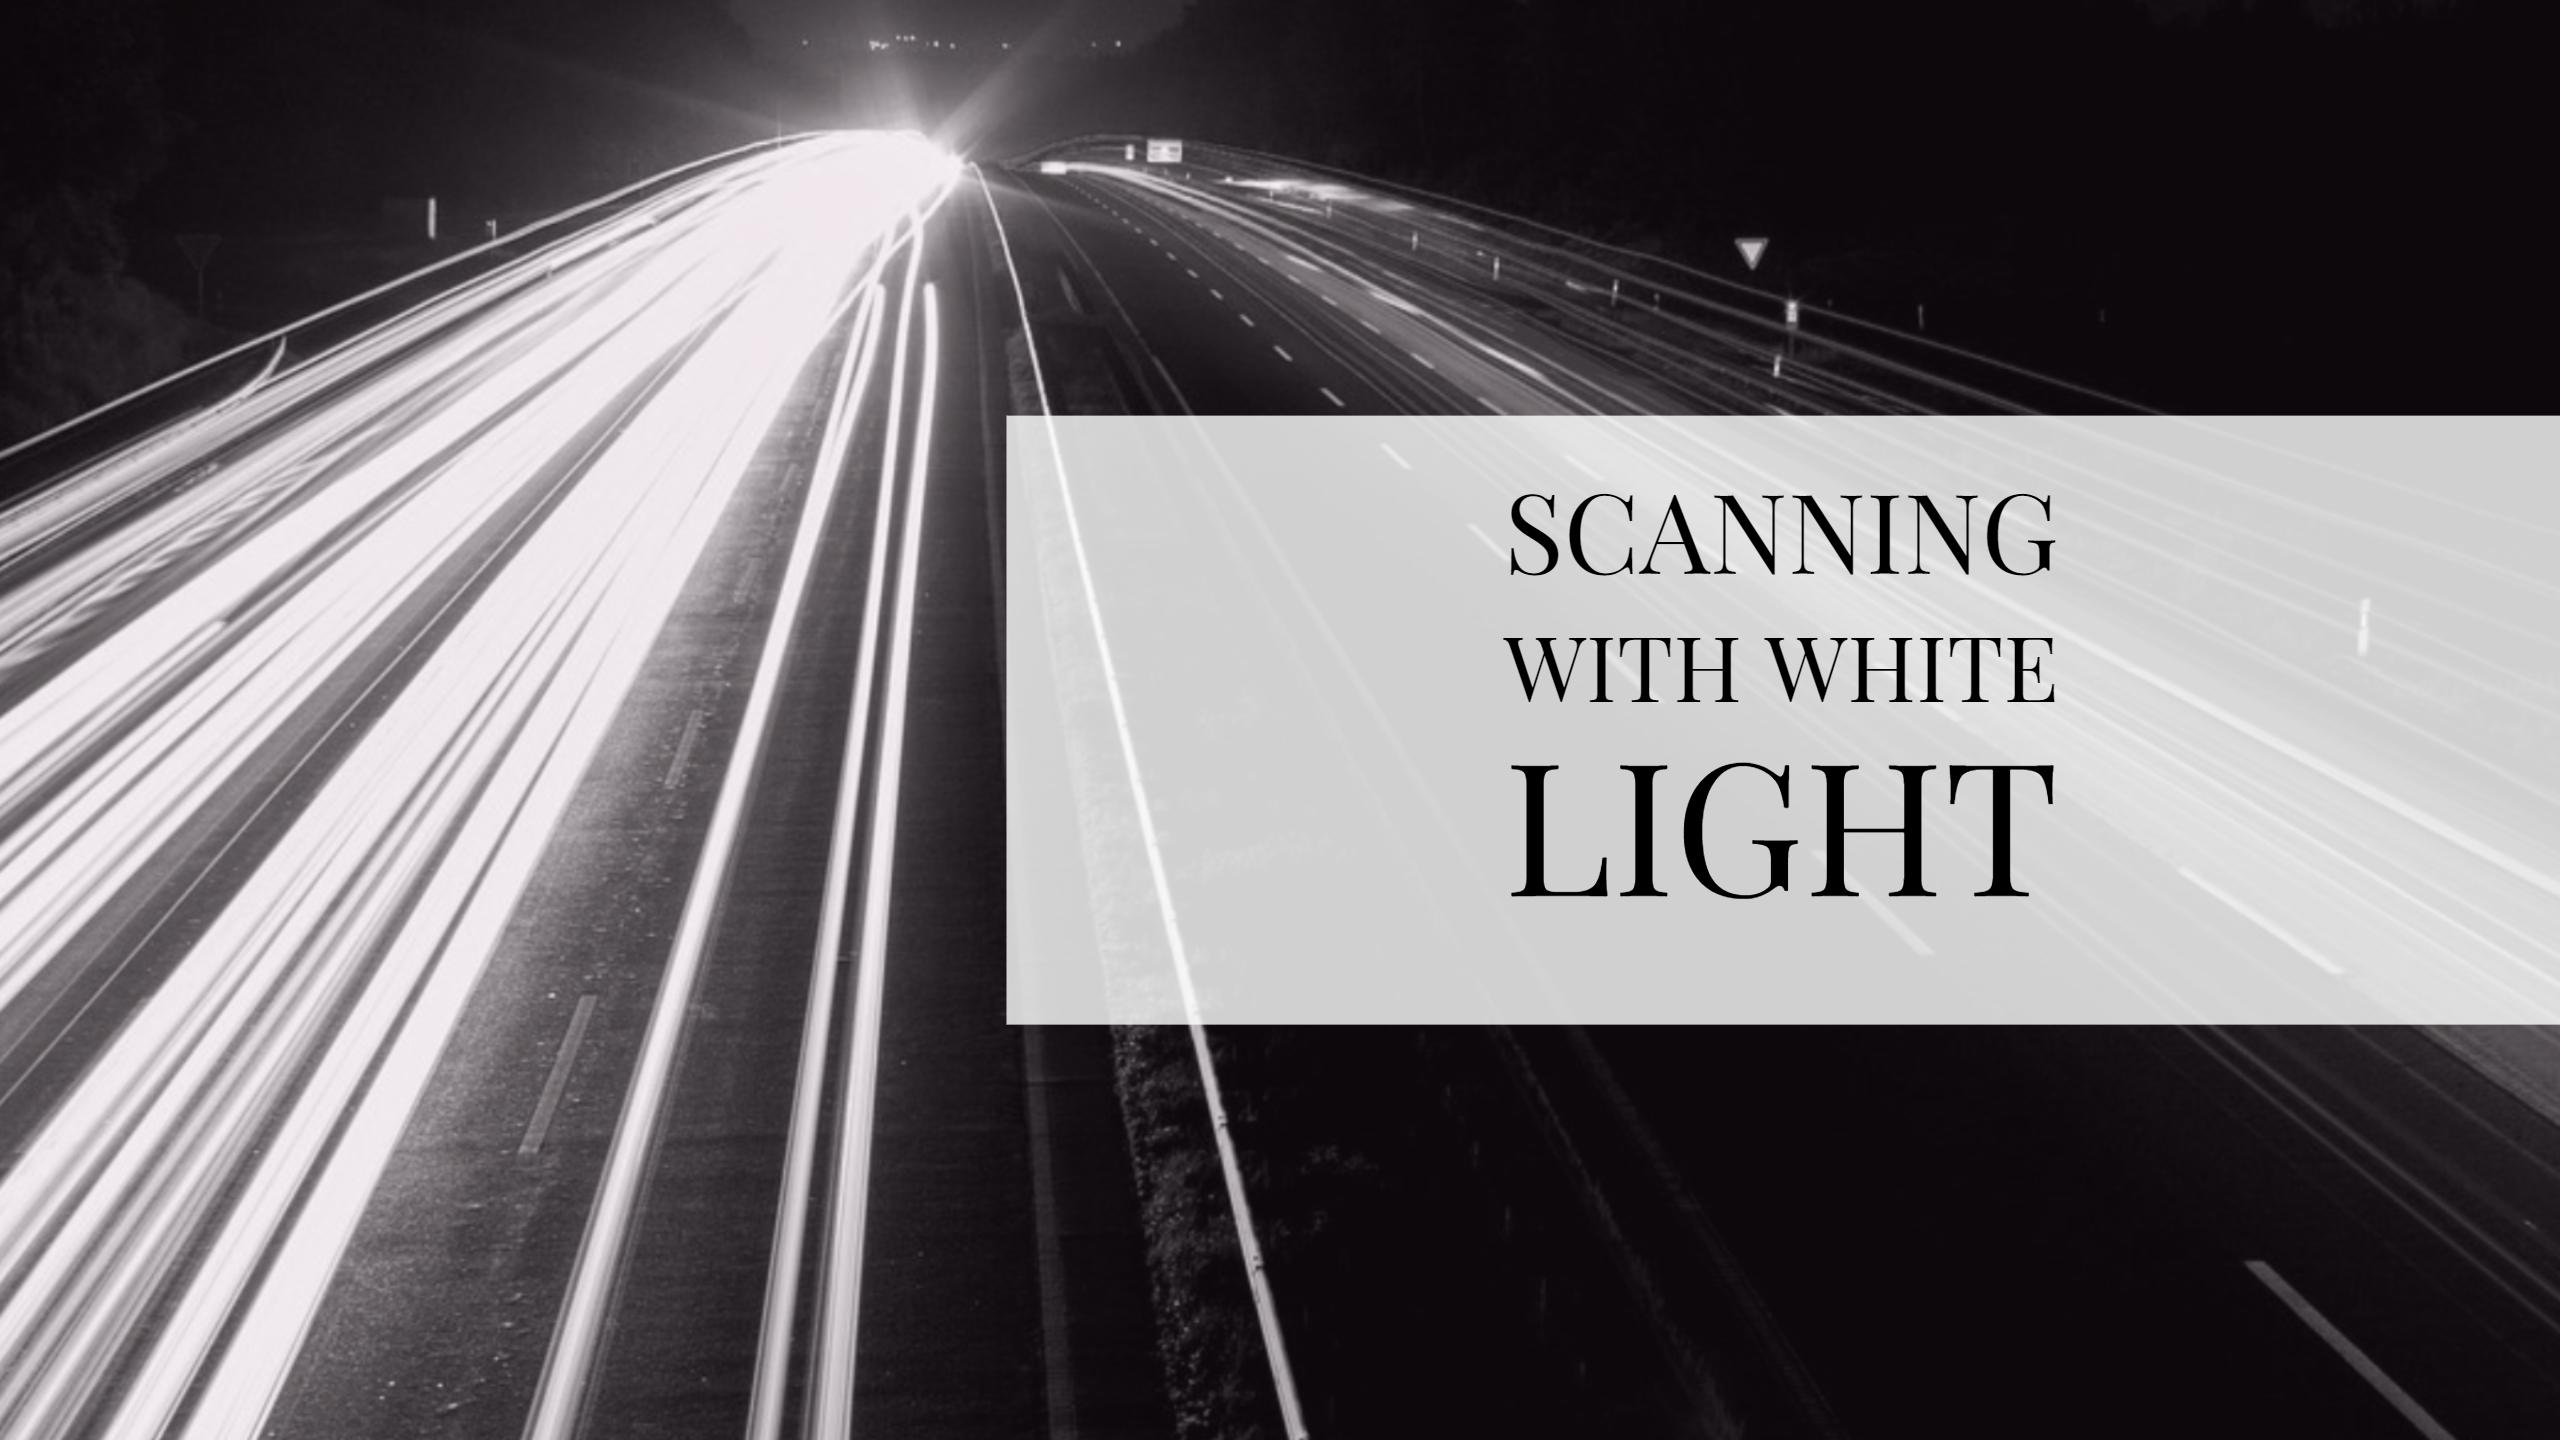 Scanning Reflective Surfaces (Gold or Metal) with White Light